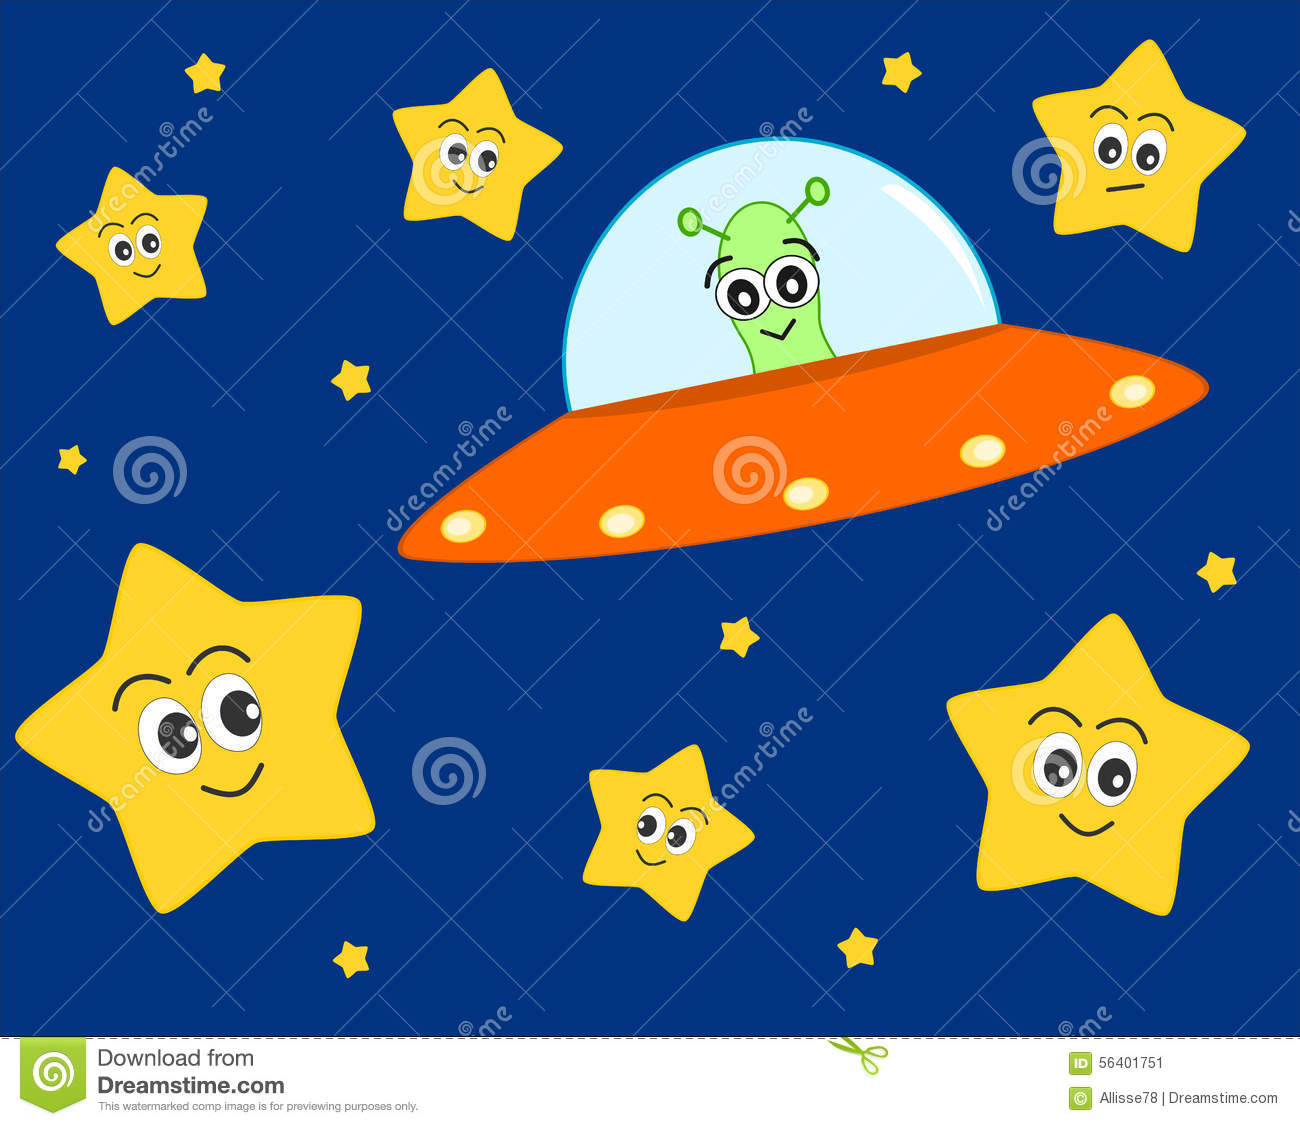 Cute Ufo Alien Cartoon In The Space With Sweet Stars Illustration For Kids